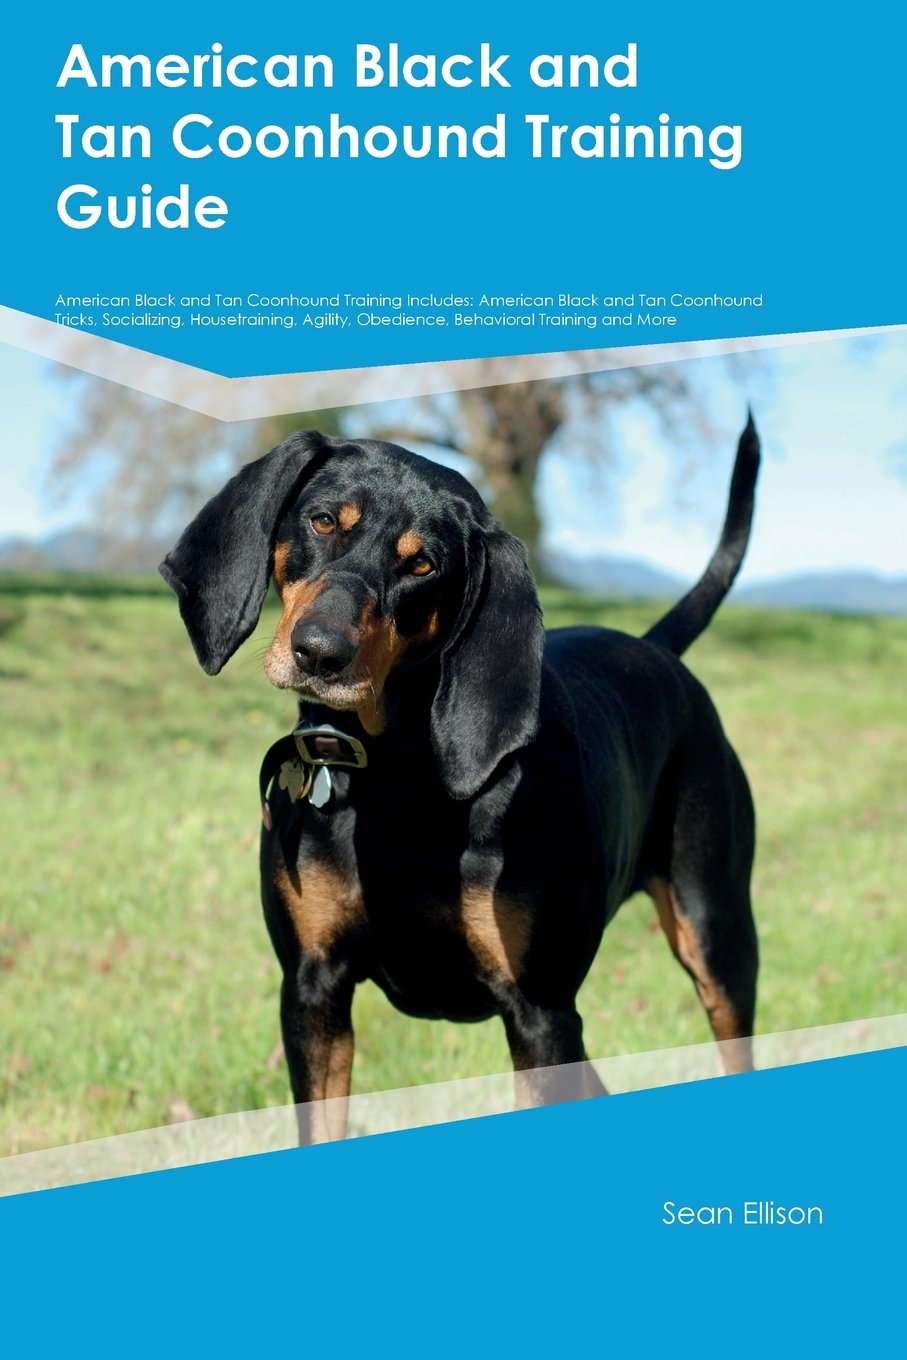 American Black and Tan Coonhound Training Guide American Black and Tan Coonhound Training Includes: American Black and Tan Coonhound Tricks, ... Obedience, Behavioral Training and More pdf